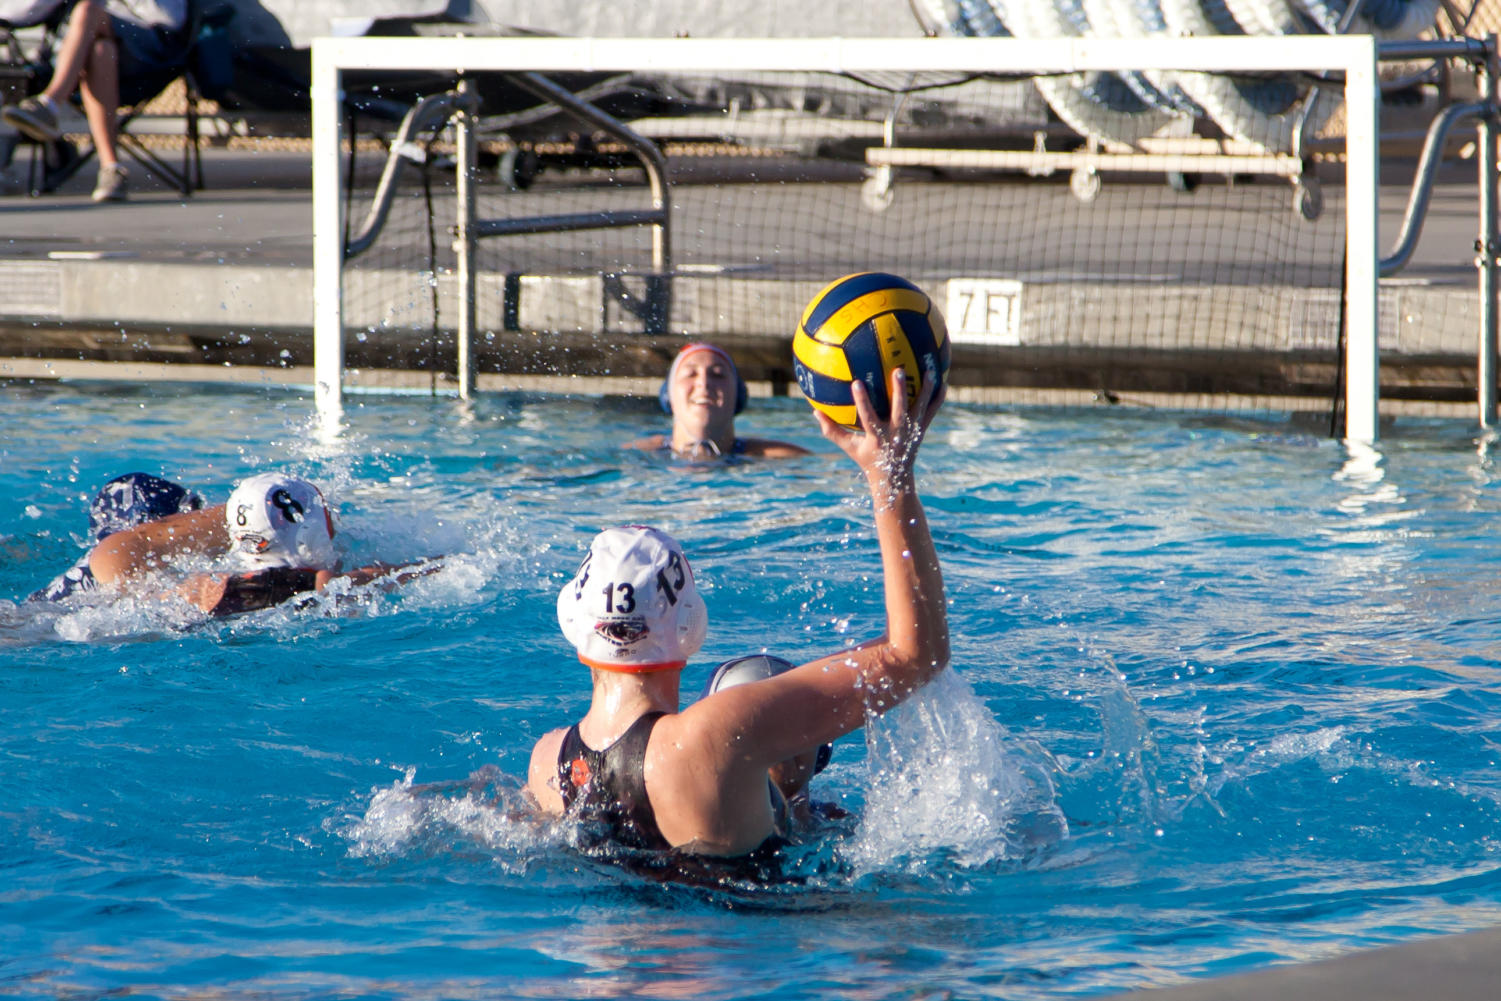 Half Moon Bay senior Lili Nelson aims for the goal.